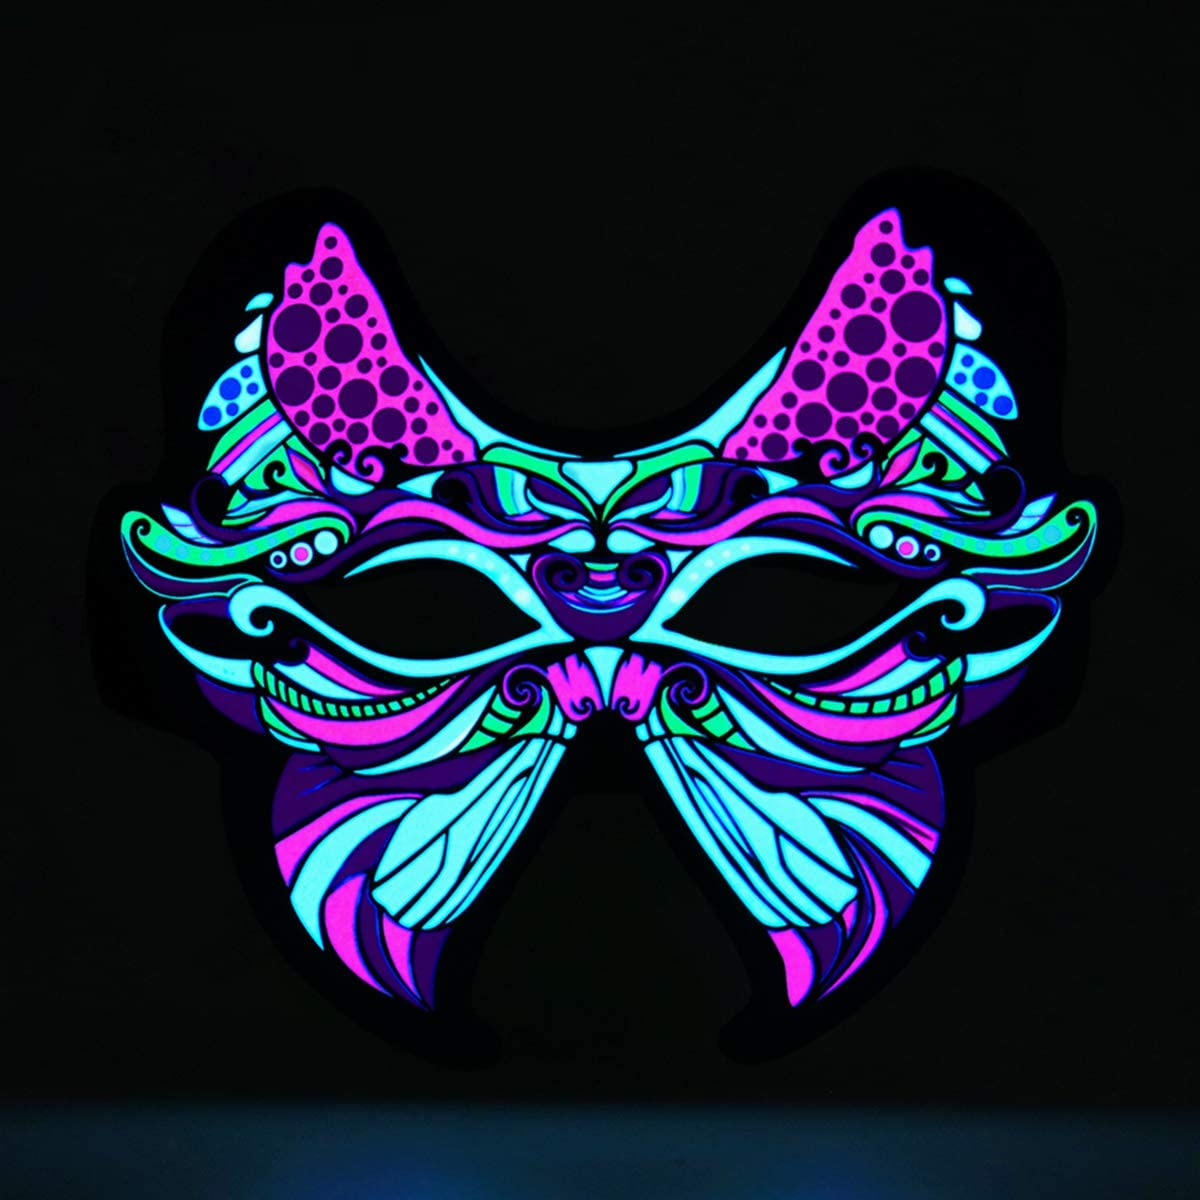 Sound Reactive LED Mask Christmas Mask Lighted Up Butterfly Mask for Party Music Reactive Flashing Mask Light Up Activated LED